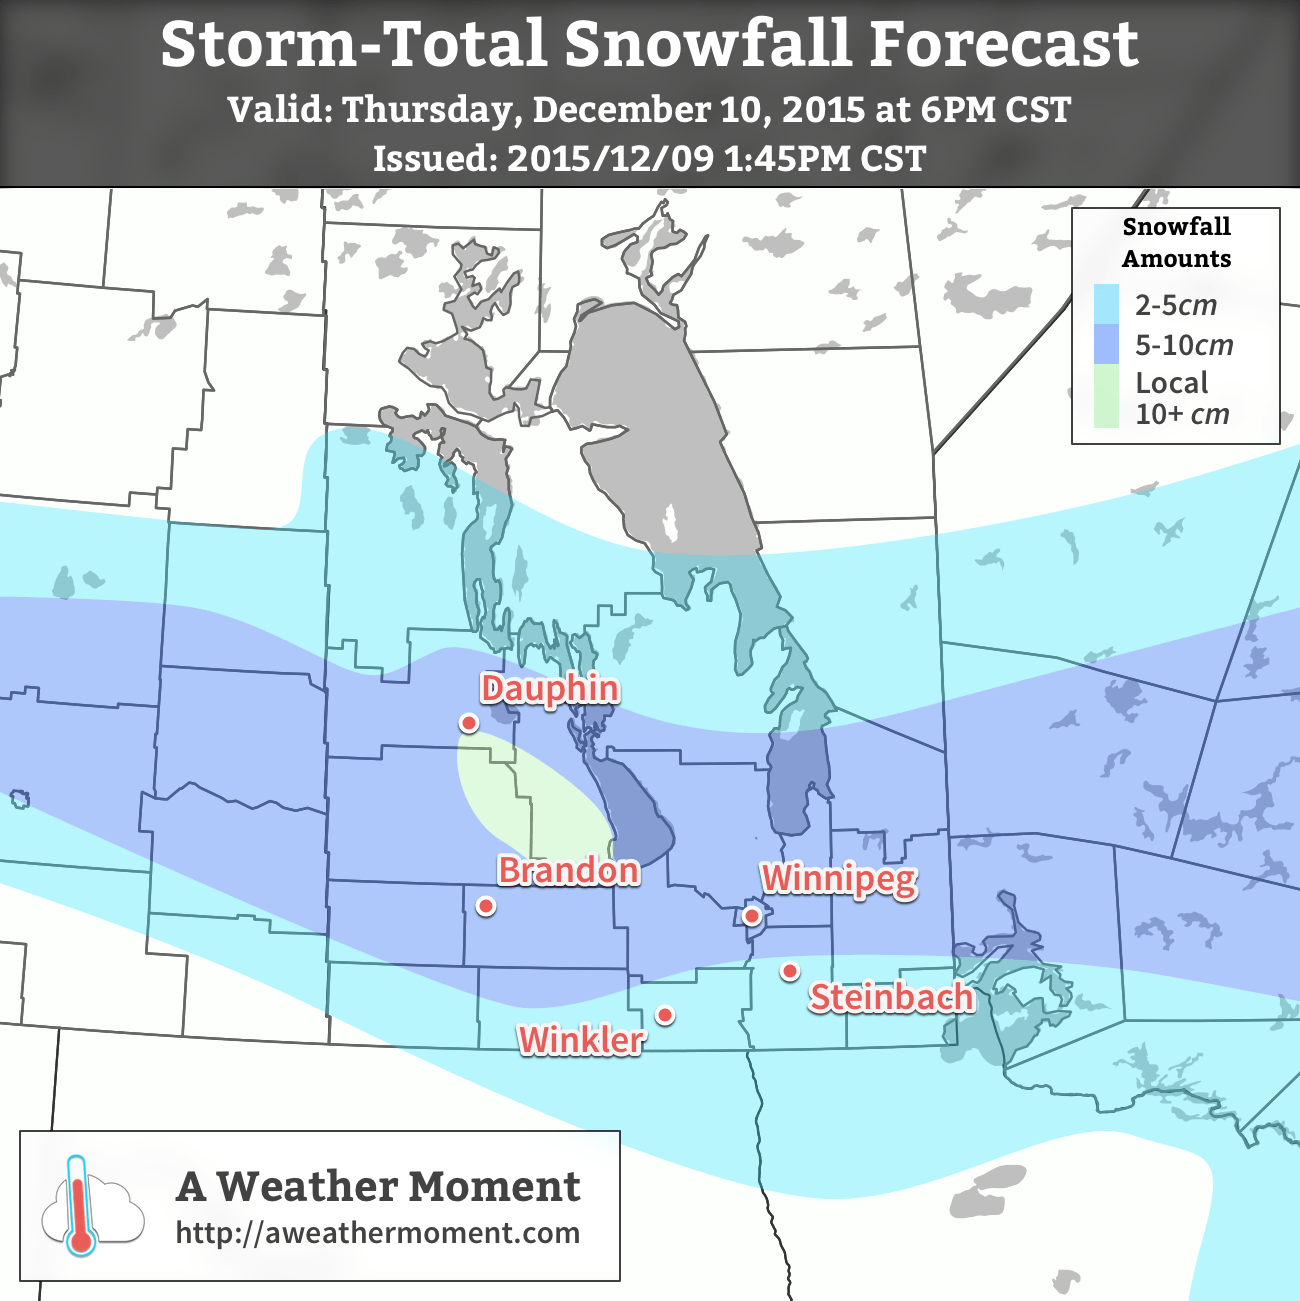 AWM Storm-Total Snowfall Forecast valid December 10, 2015